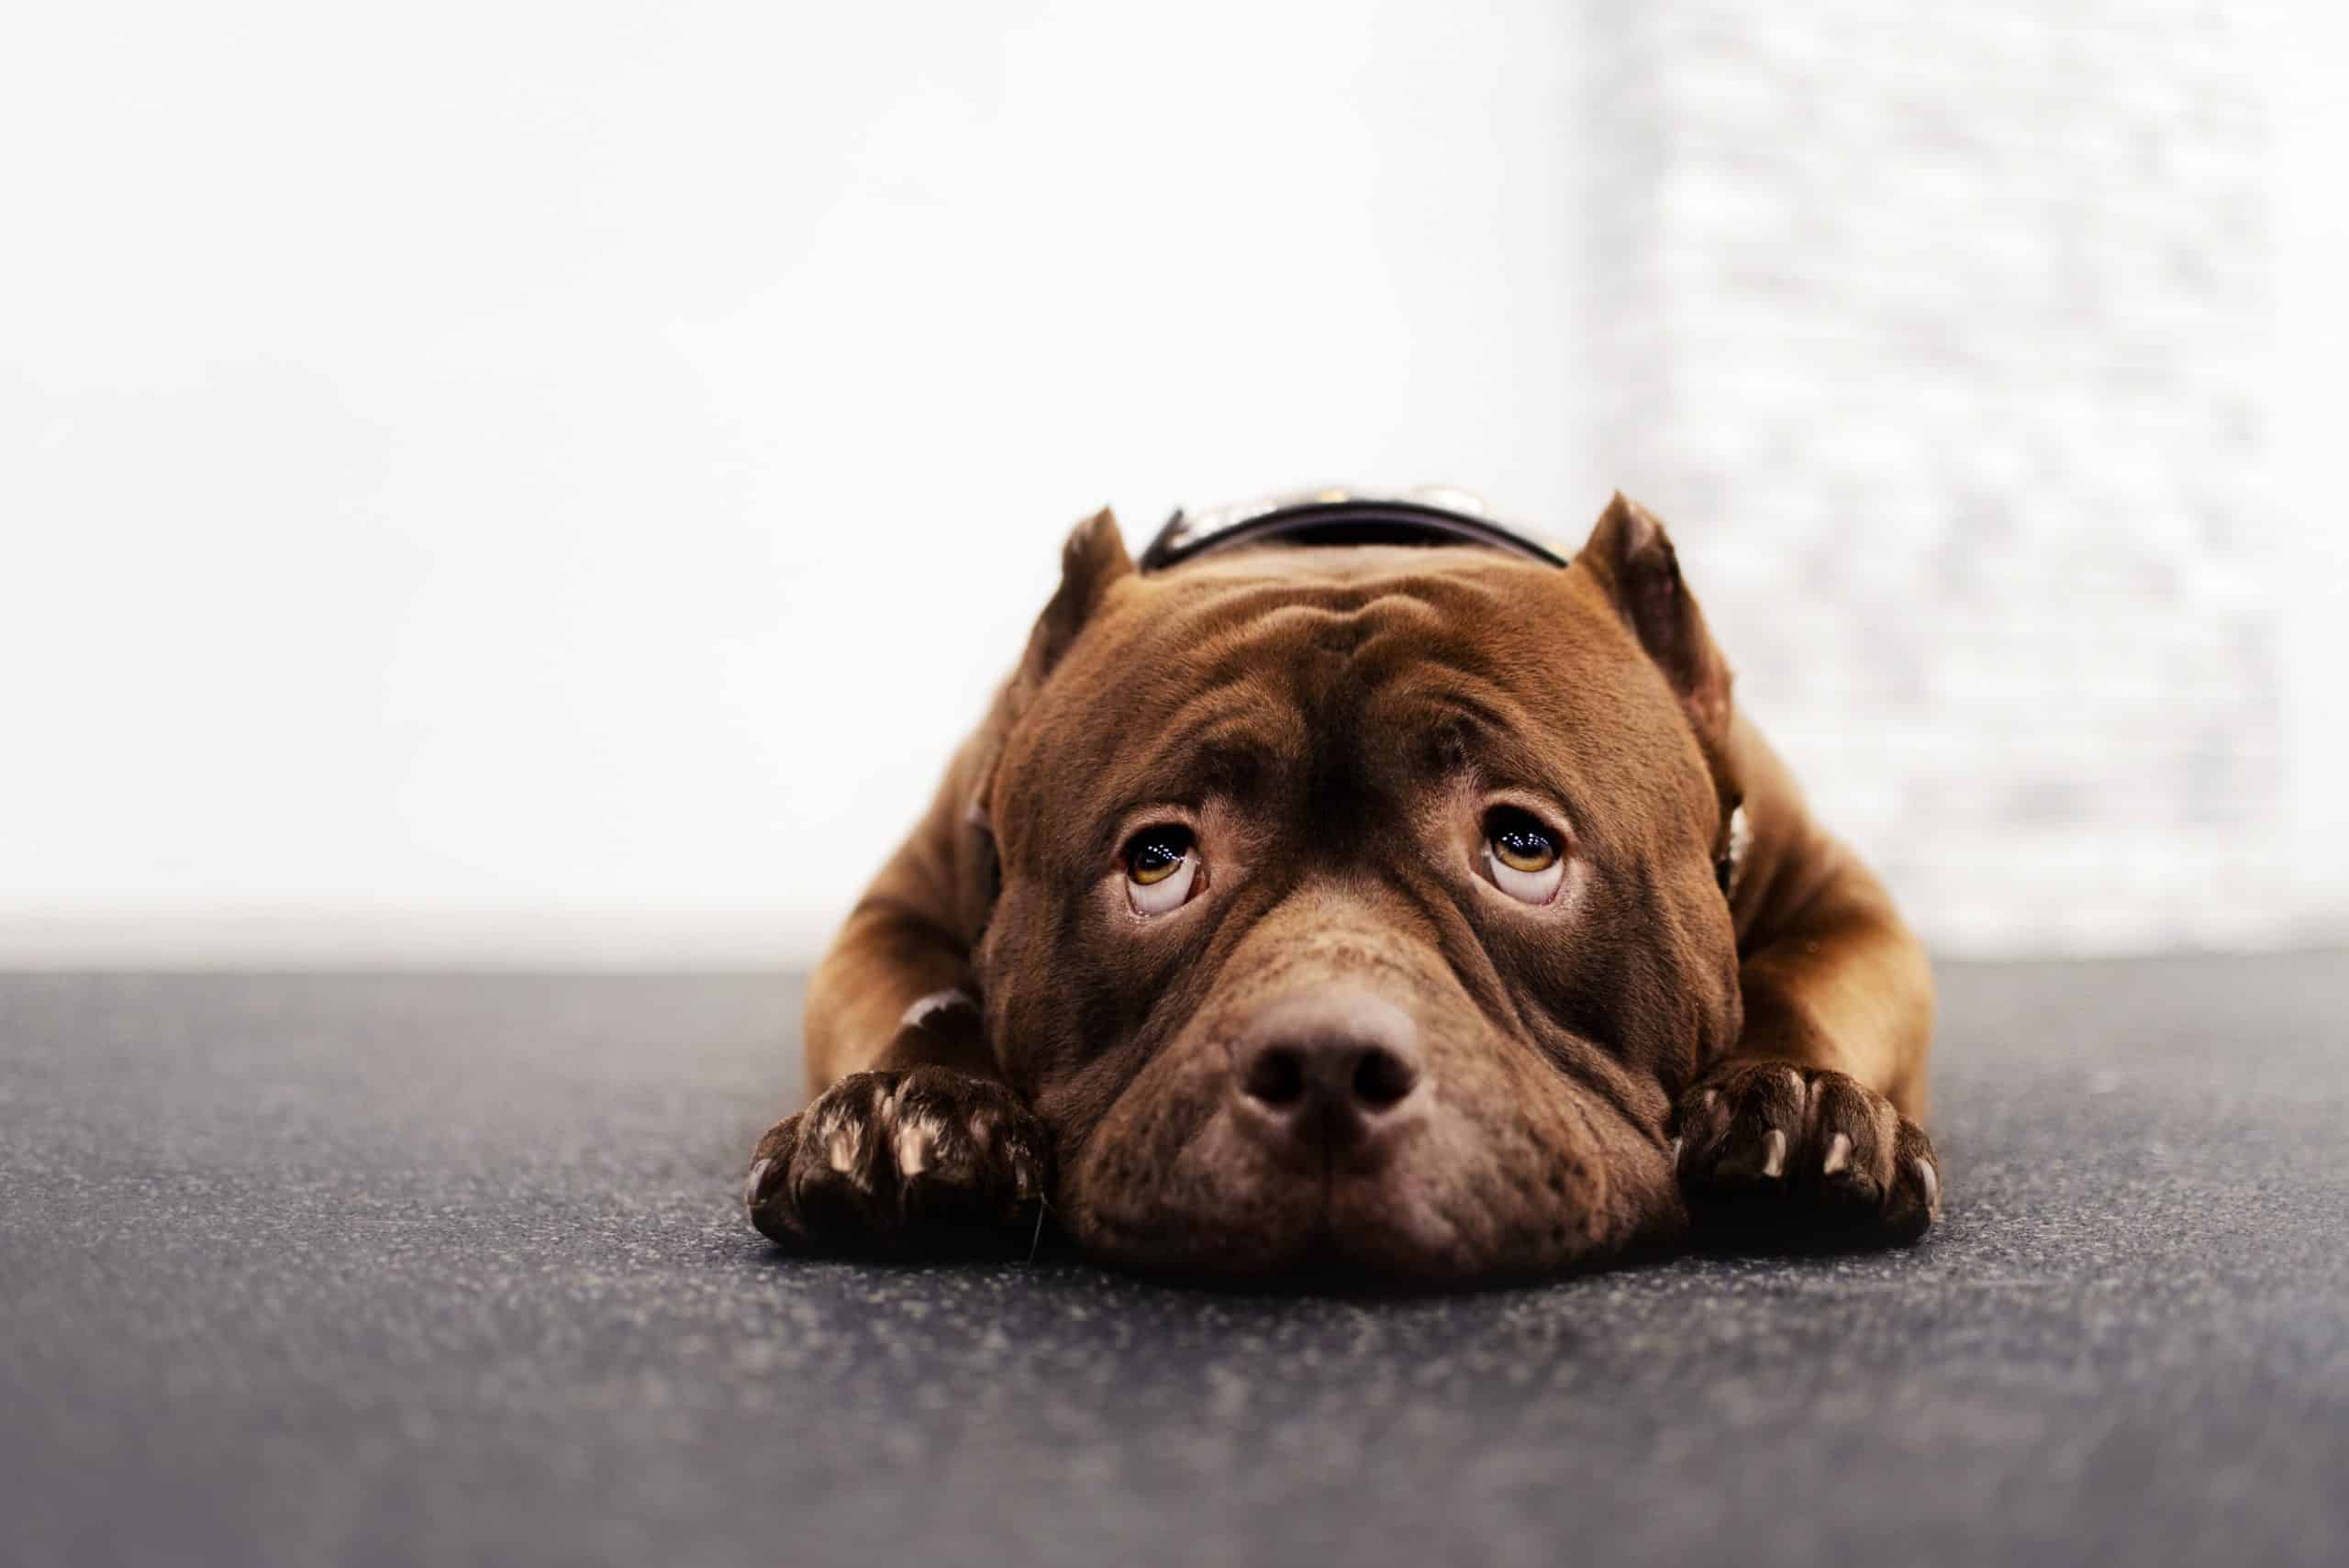 Fearful Staffordshire Terrier. Learning the nuances of your dog's temperament is an ideal first step in the training process